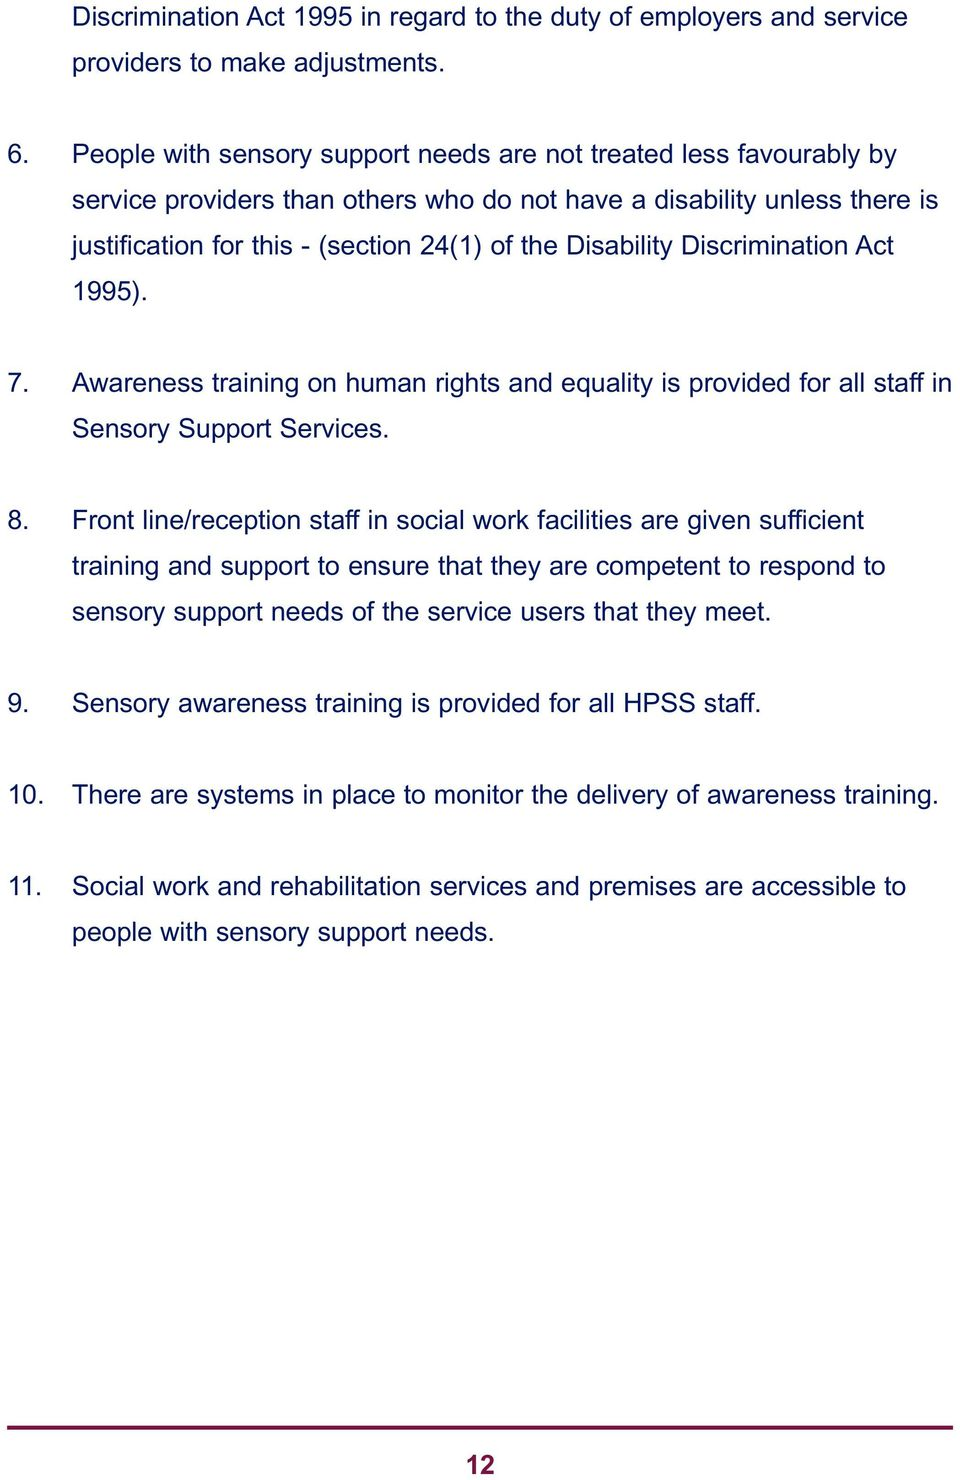 Disability Discrimination Act 1995). 7. Awareness training on human rights and equality is provided for all staff in Sensory Support Services. 8.